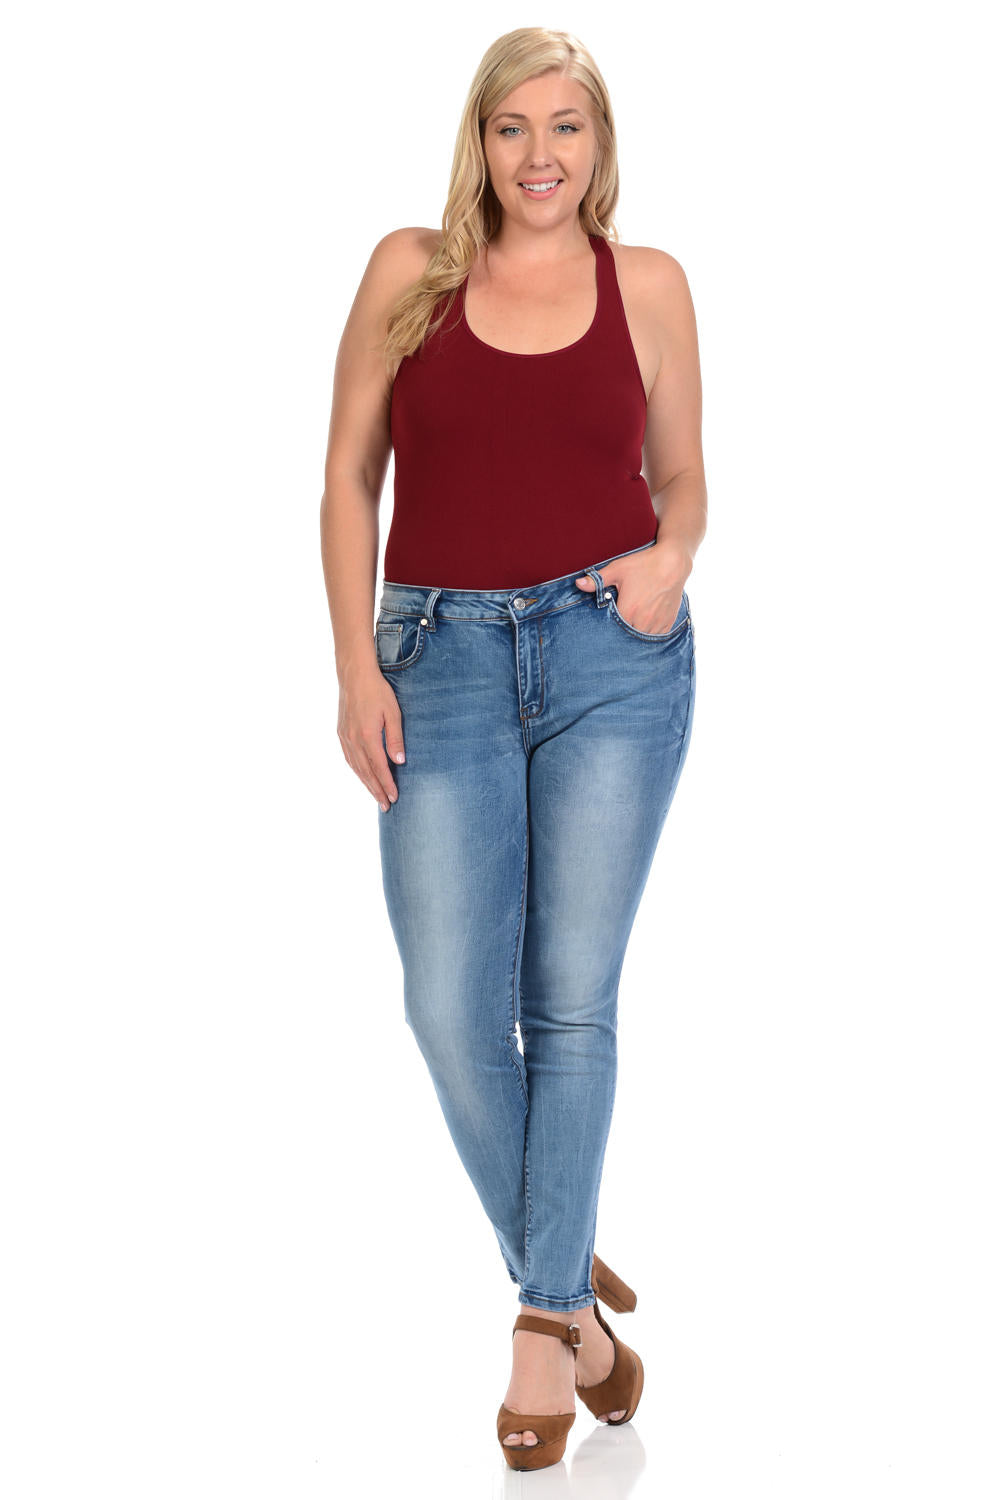 Sweet Look Premium Edition Women's Jeans - Plus Size - High Waist - Skinny - Style A280